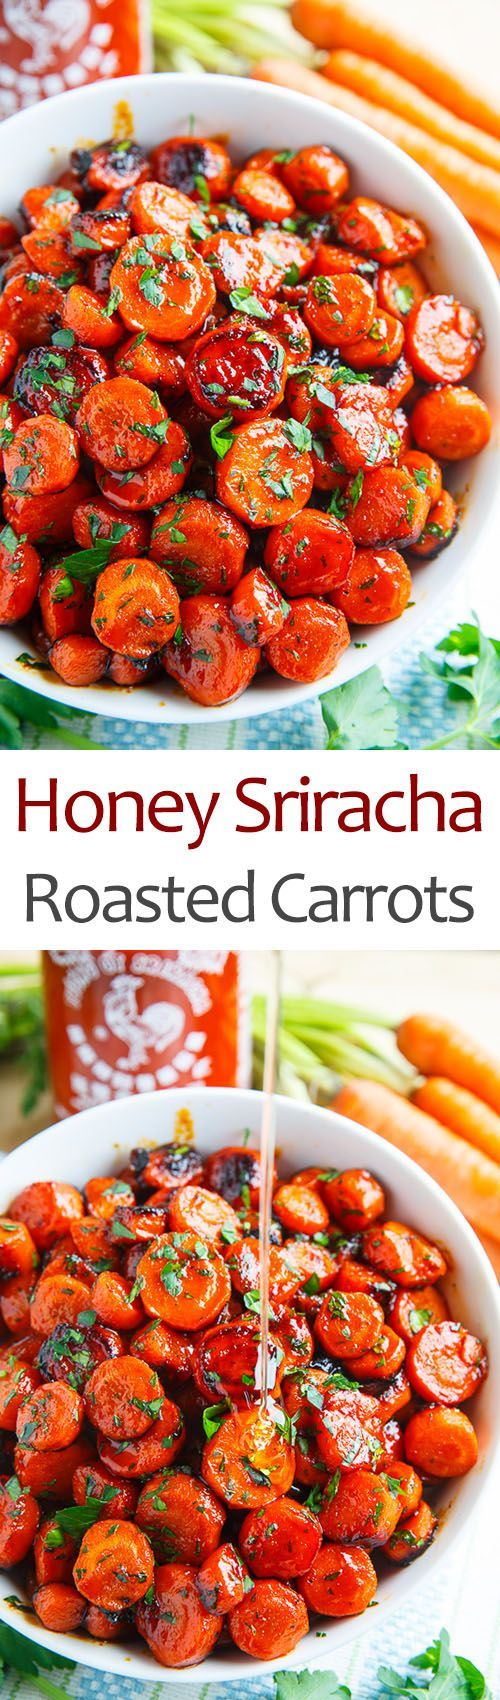 Honey Sriracha Roasted Carrots Vegetable Side Dish Recipe via Closet Cooking